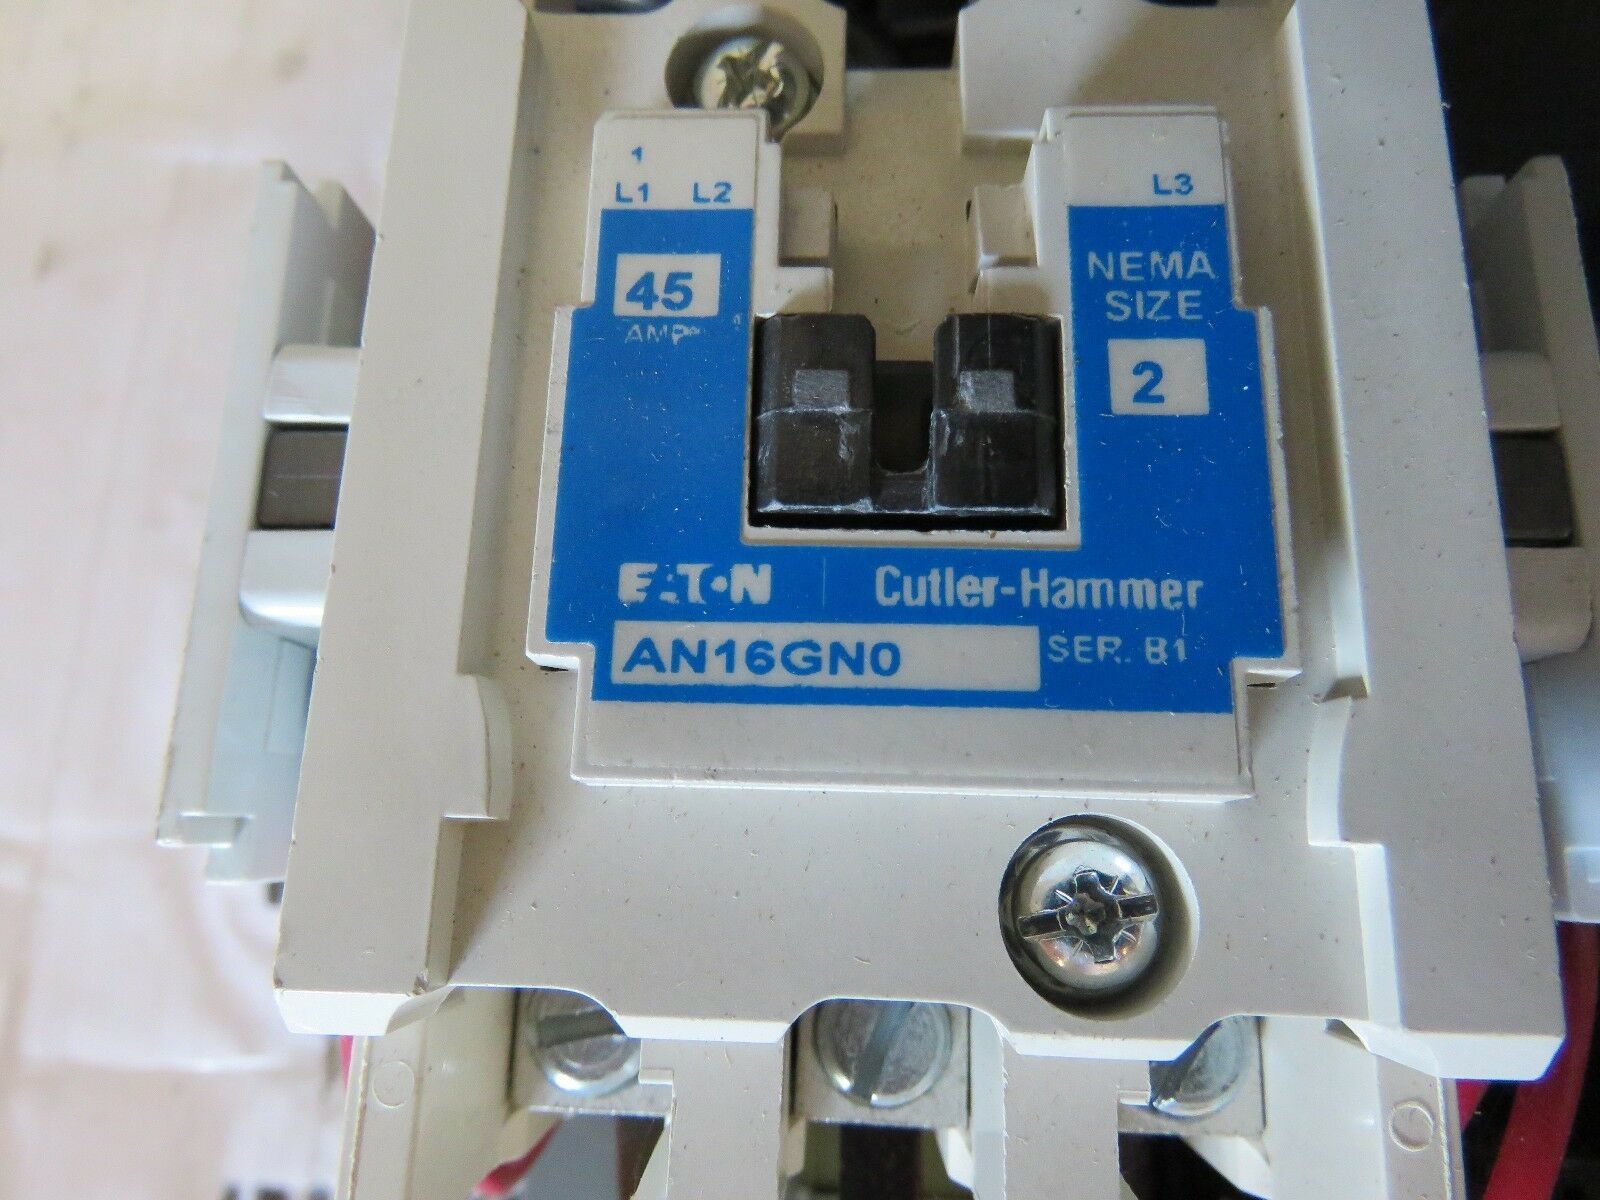 Eaton B27cgf30b040 Contactor Wiring Diagram Starter Vfd Cutler Hammer Size 2 120v Coil 3r Enclosure Hand Off On